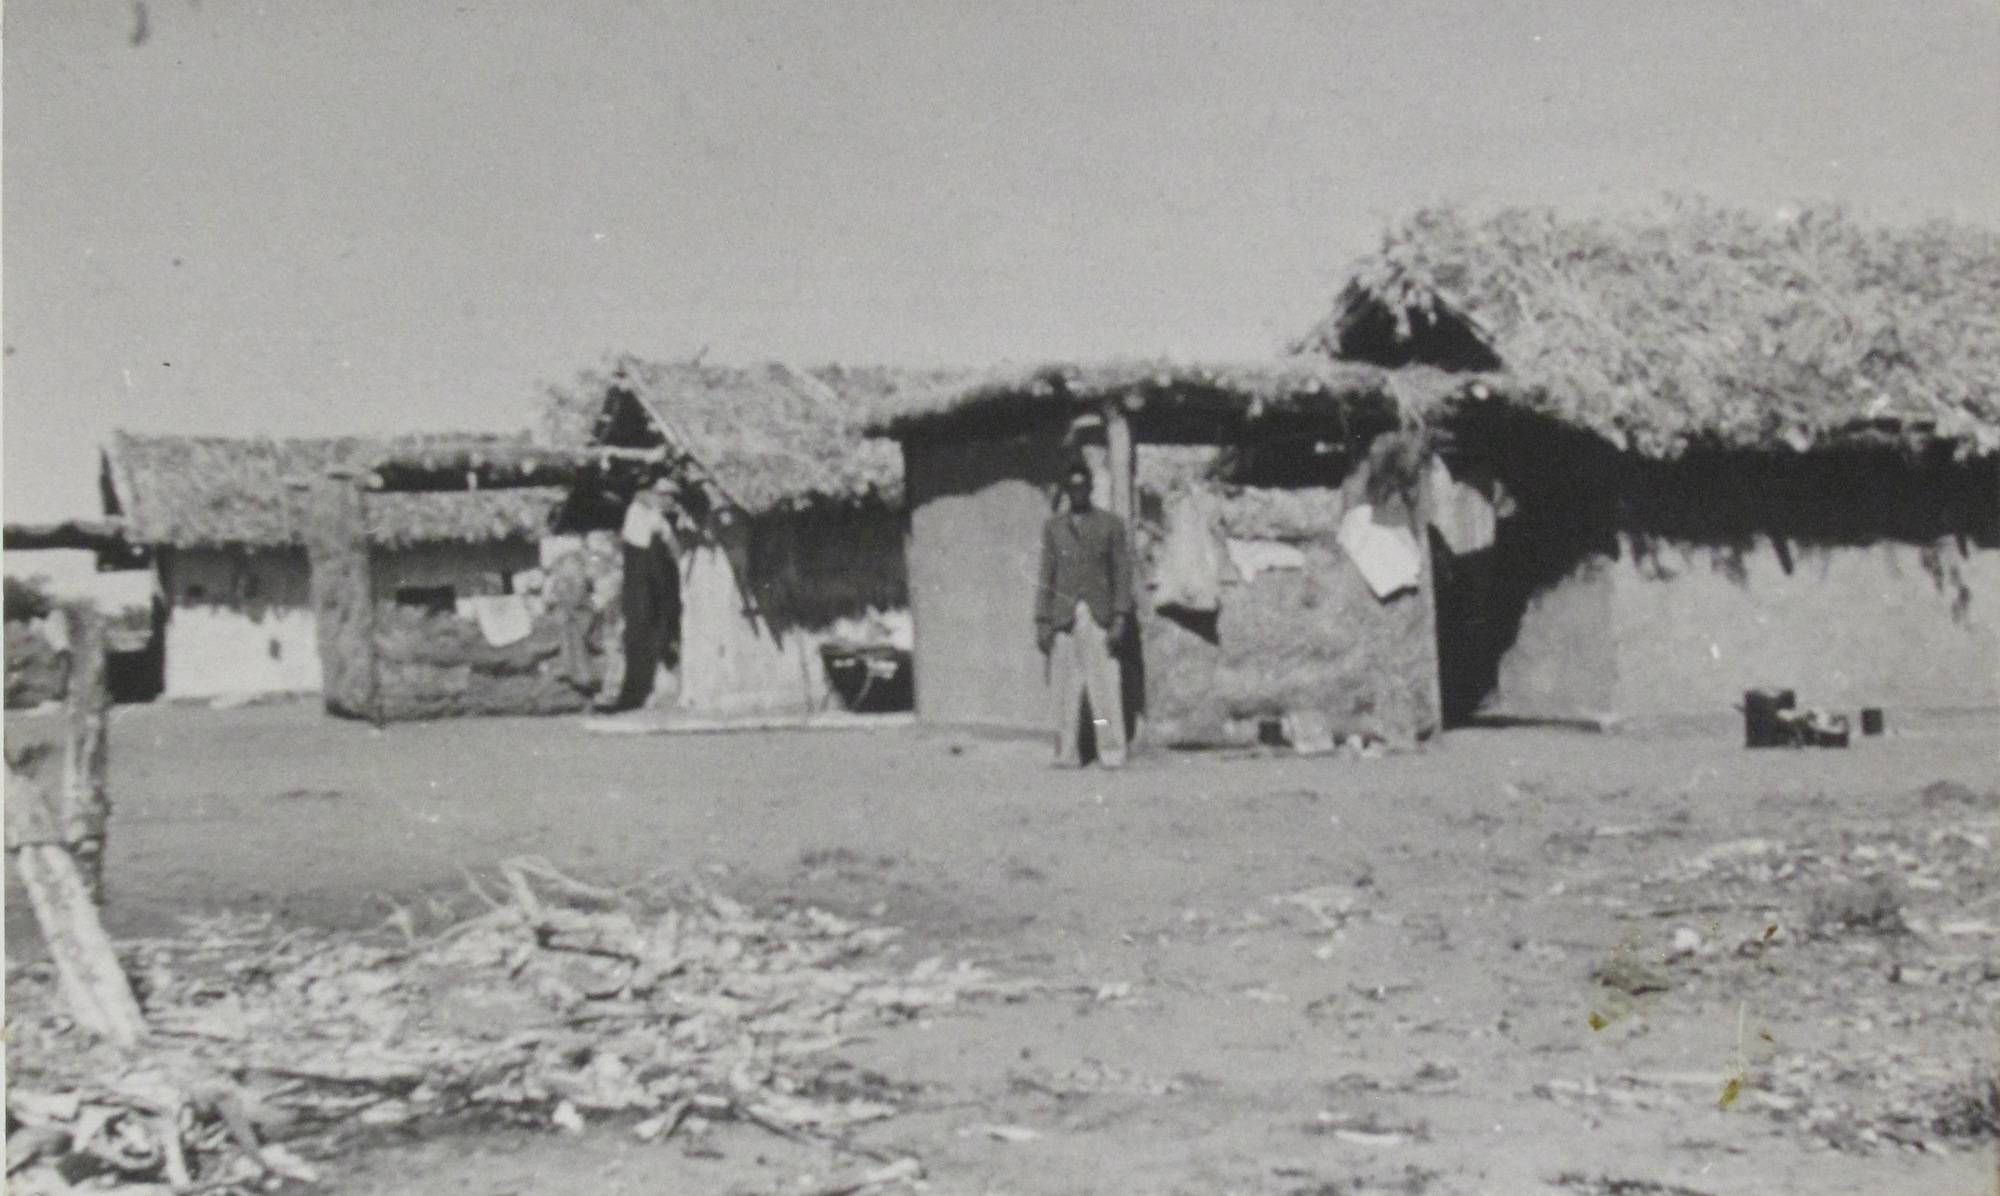 Adobe cottages at Yandeyarra 1953